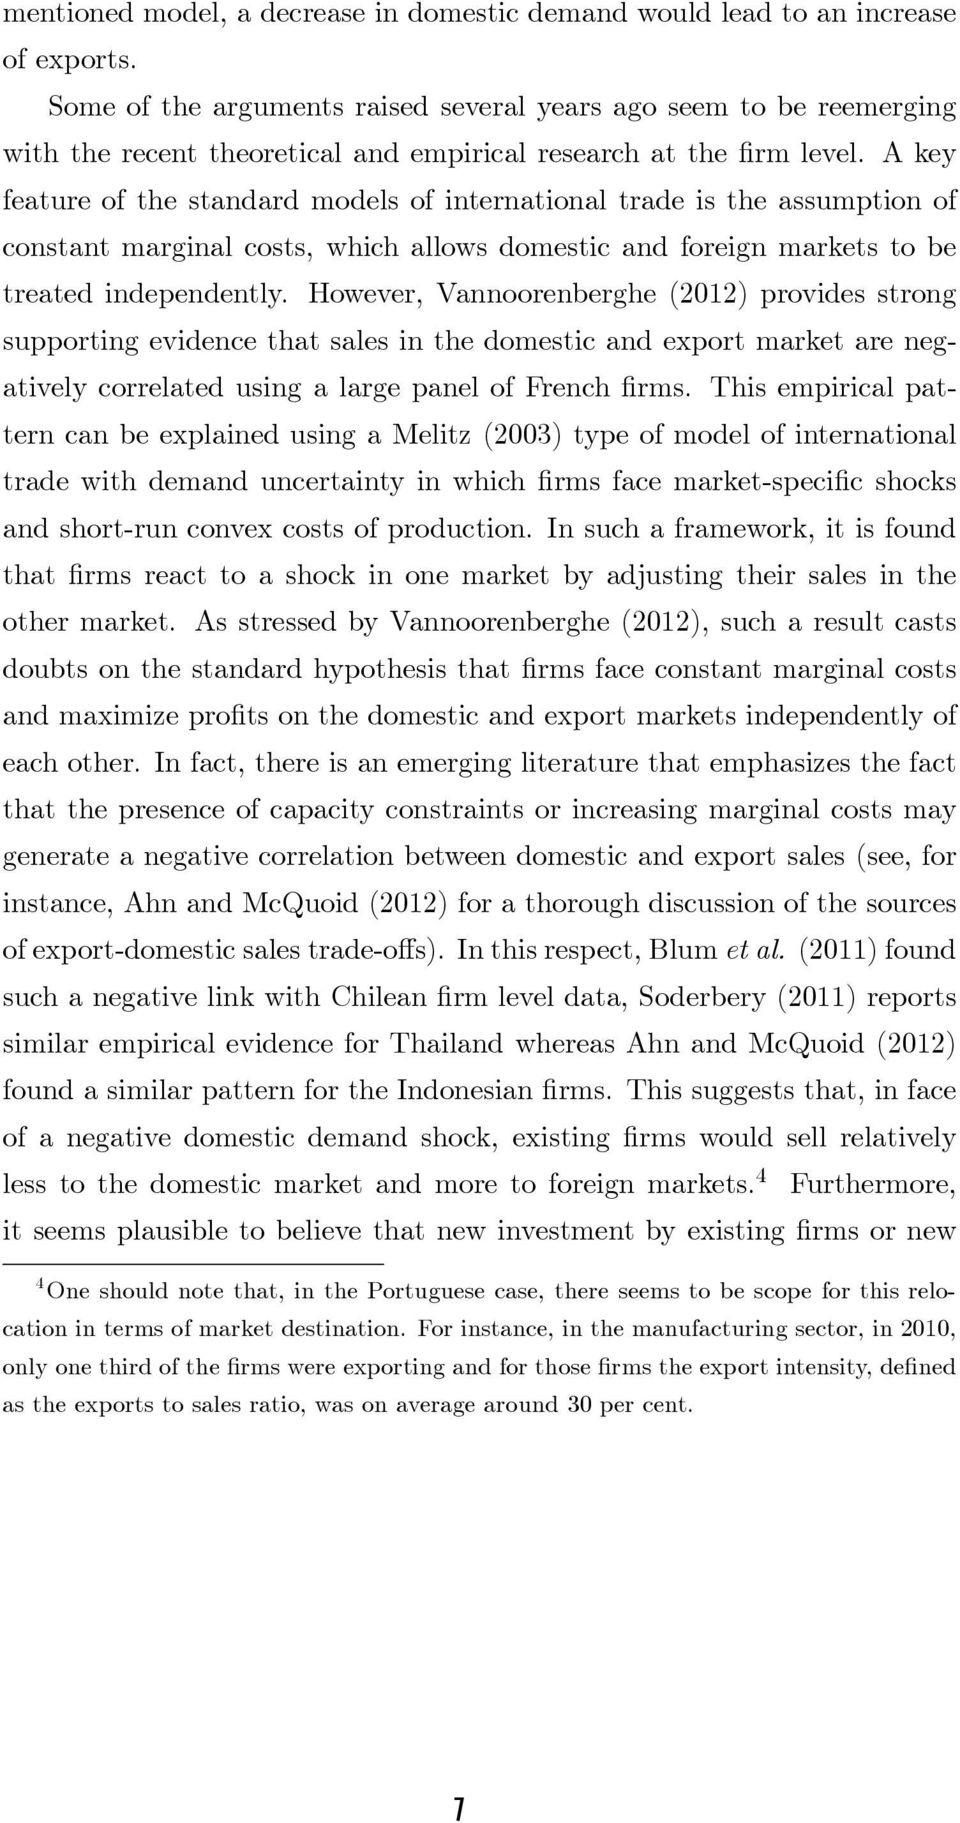 A key feature of the standard models of international trade is the assumption of constant marginal costs, which allows domestic and foreign markets to be treated independently.